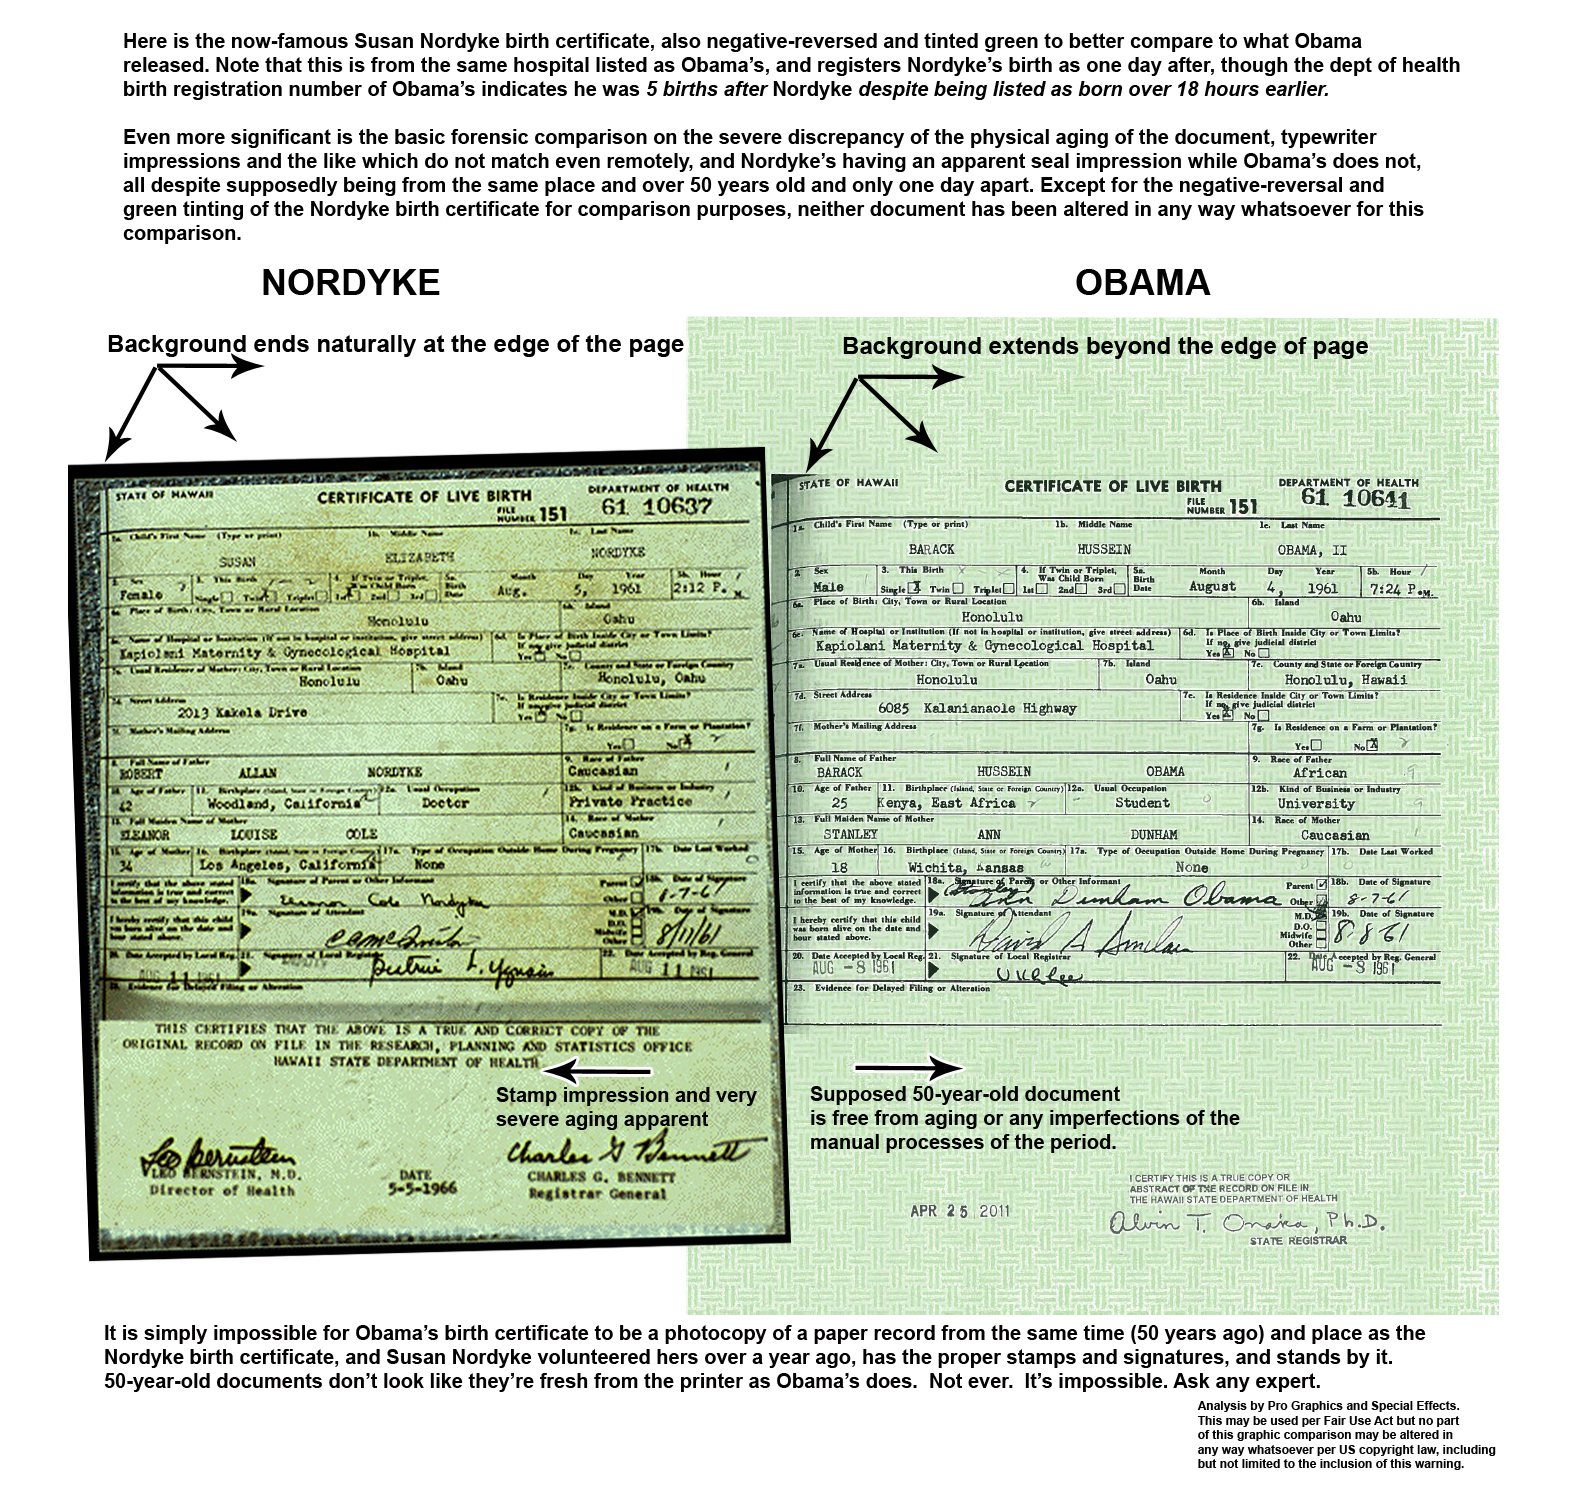 Give us liberty plus more proof from other experts that obama adobe software engineer doubts obama birth certificate concludes something digital came between the paper and the glass by dr jerome corsi wnd xflitez Choice Image